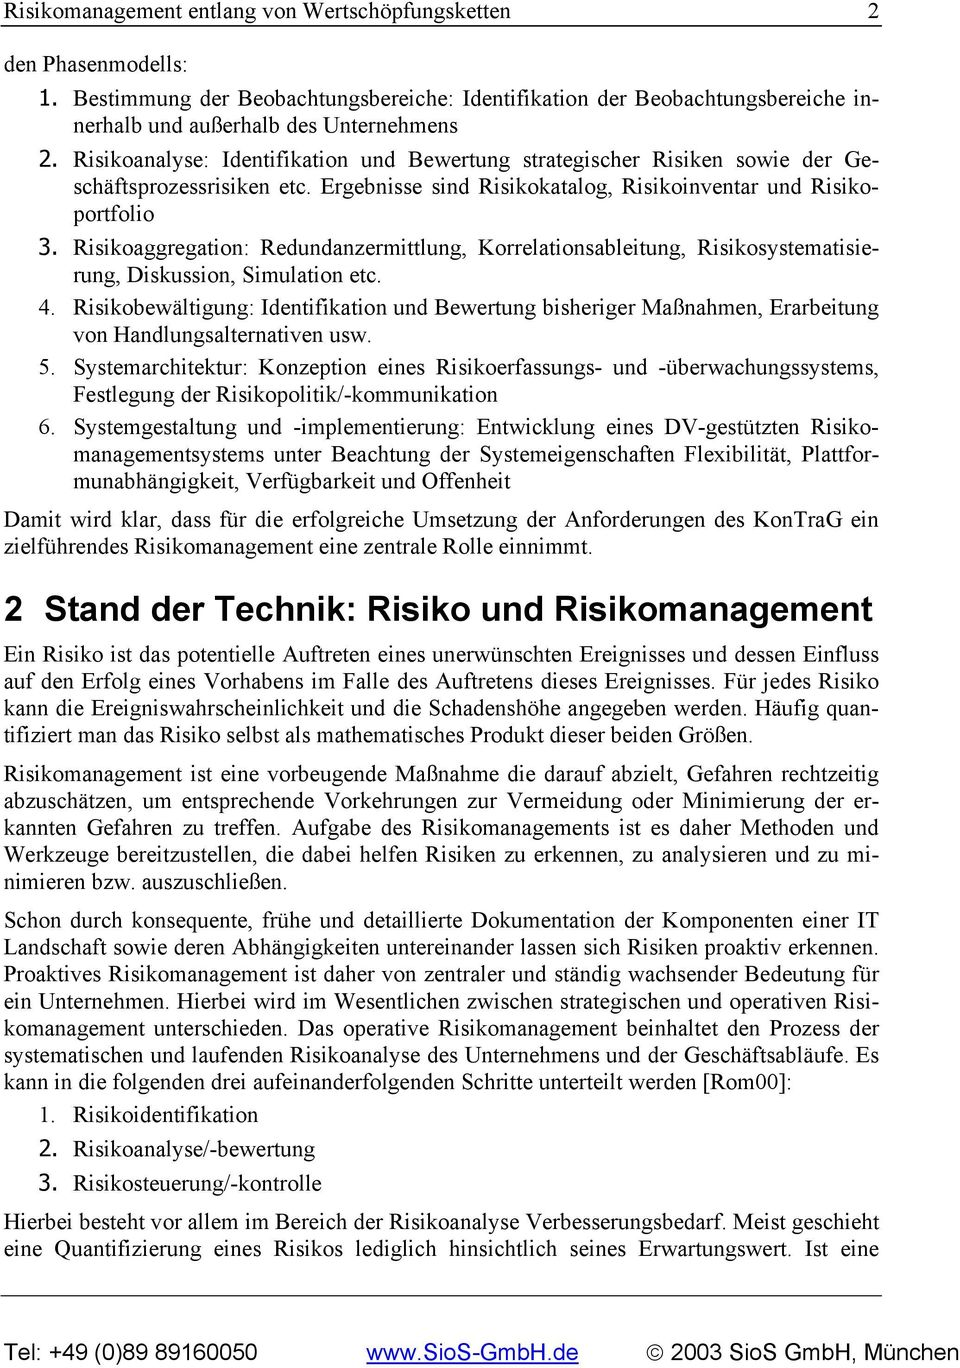 Risikoaggregation: Redundanzermittlung, Korrelationsableitung, Risikosystematisierung, Diskussion, Simulation etc. 4.